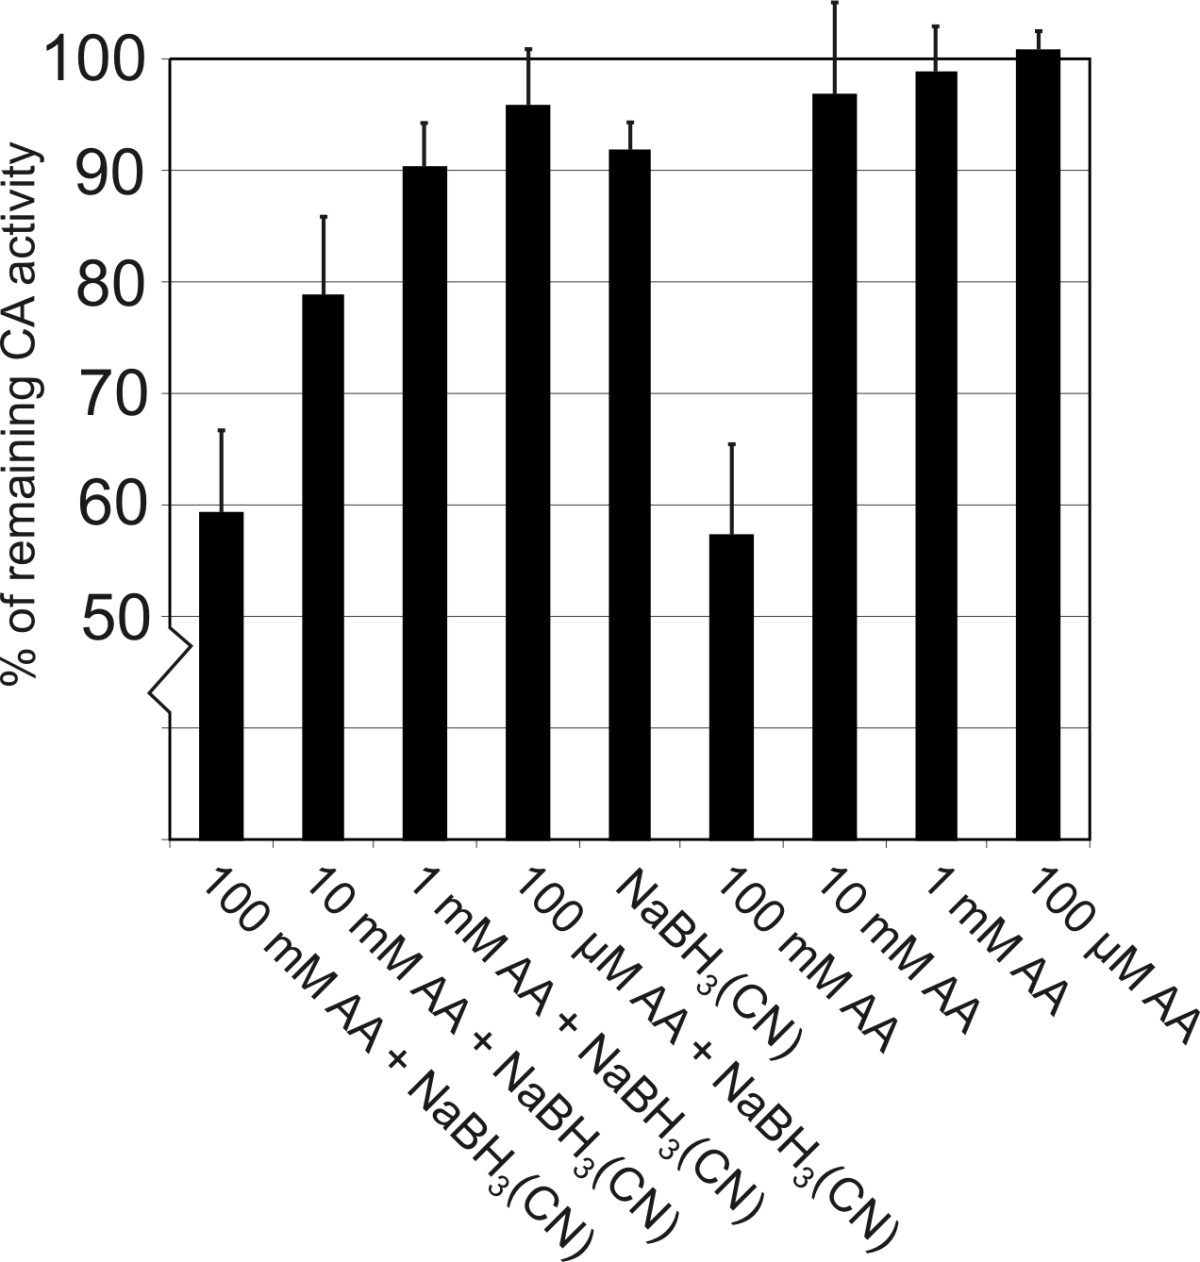 https://static-content.springer.com/image/art%3A10.1186%2F1471-2091-9-32/MediaObjects/12858_2008_Article_218_Fig4_HTML.jpg